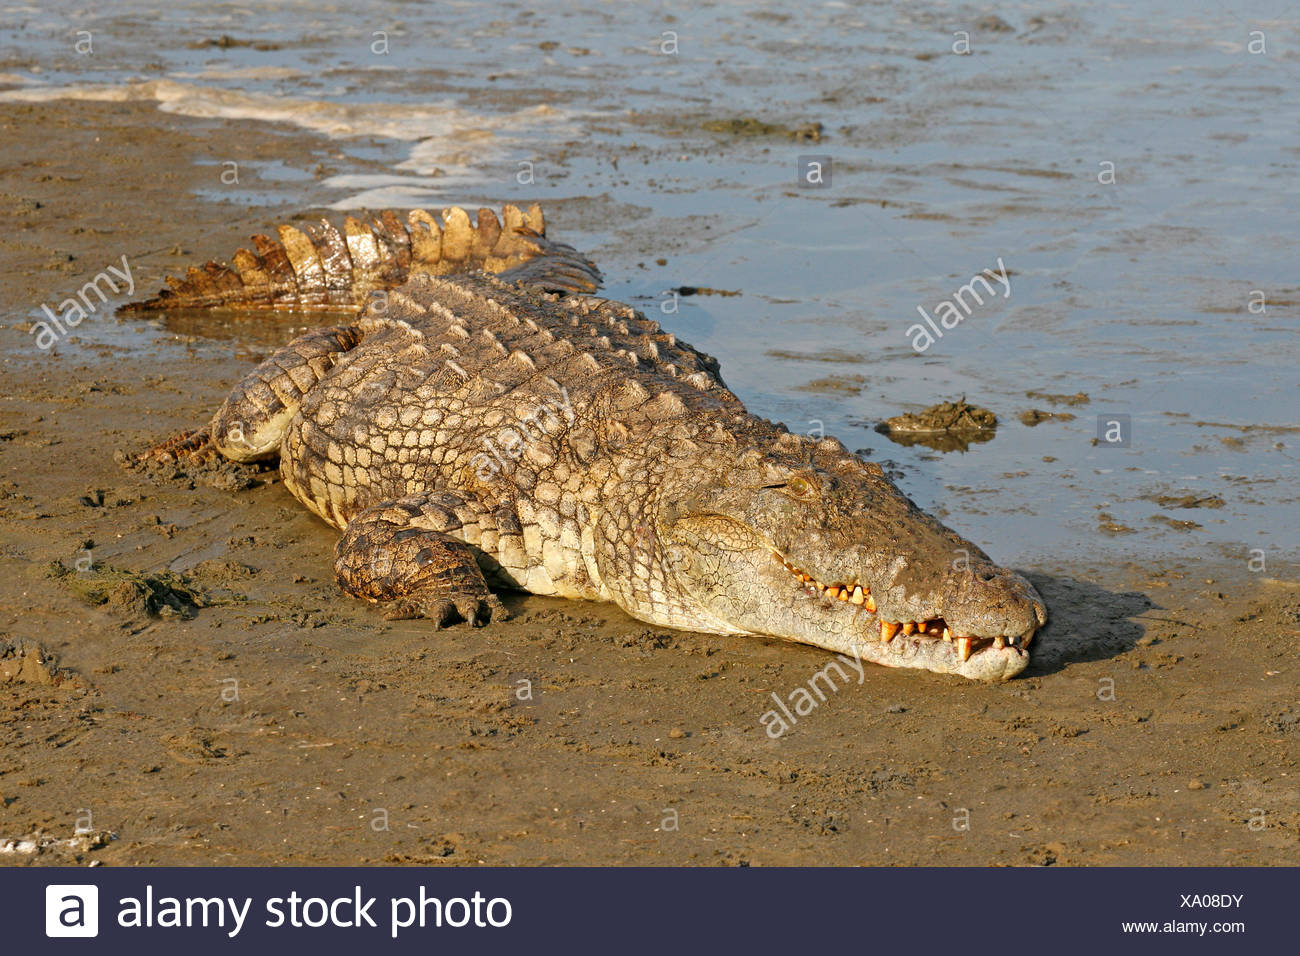 photo of a large nile crocodile lying at the edge of the water - Stock Image